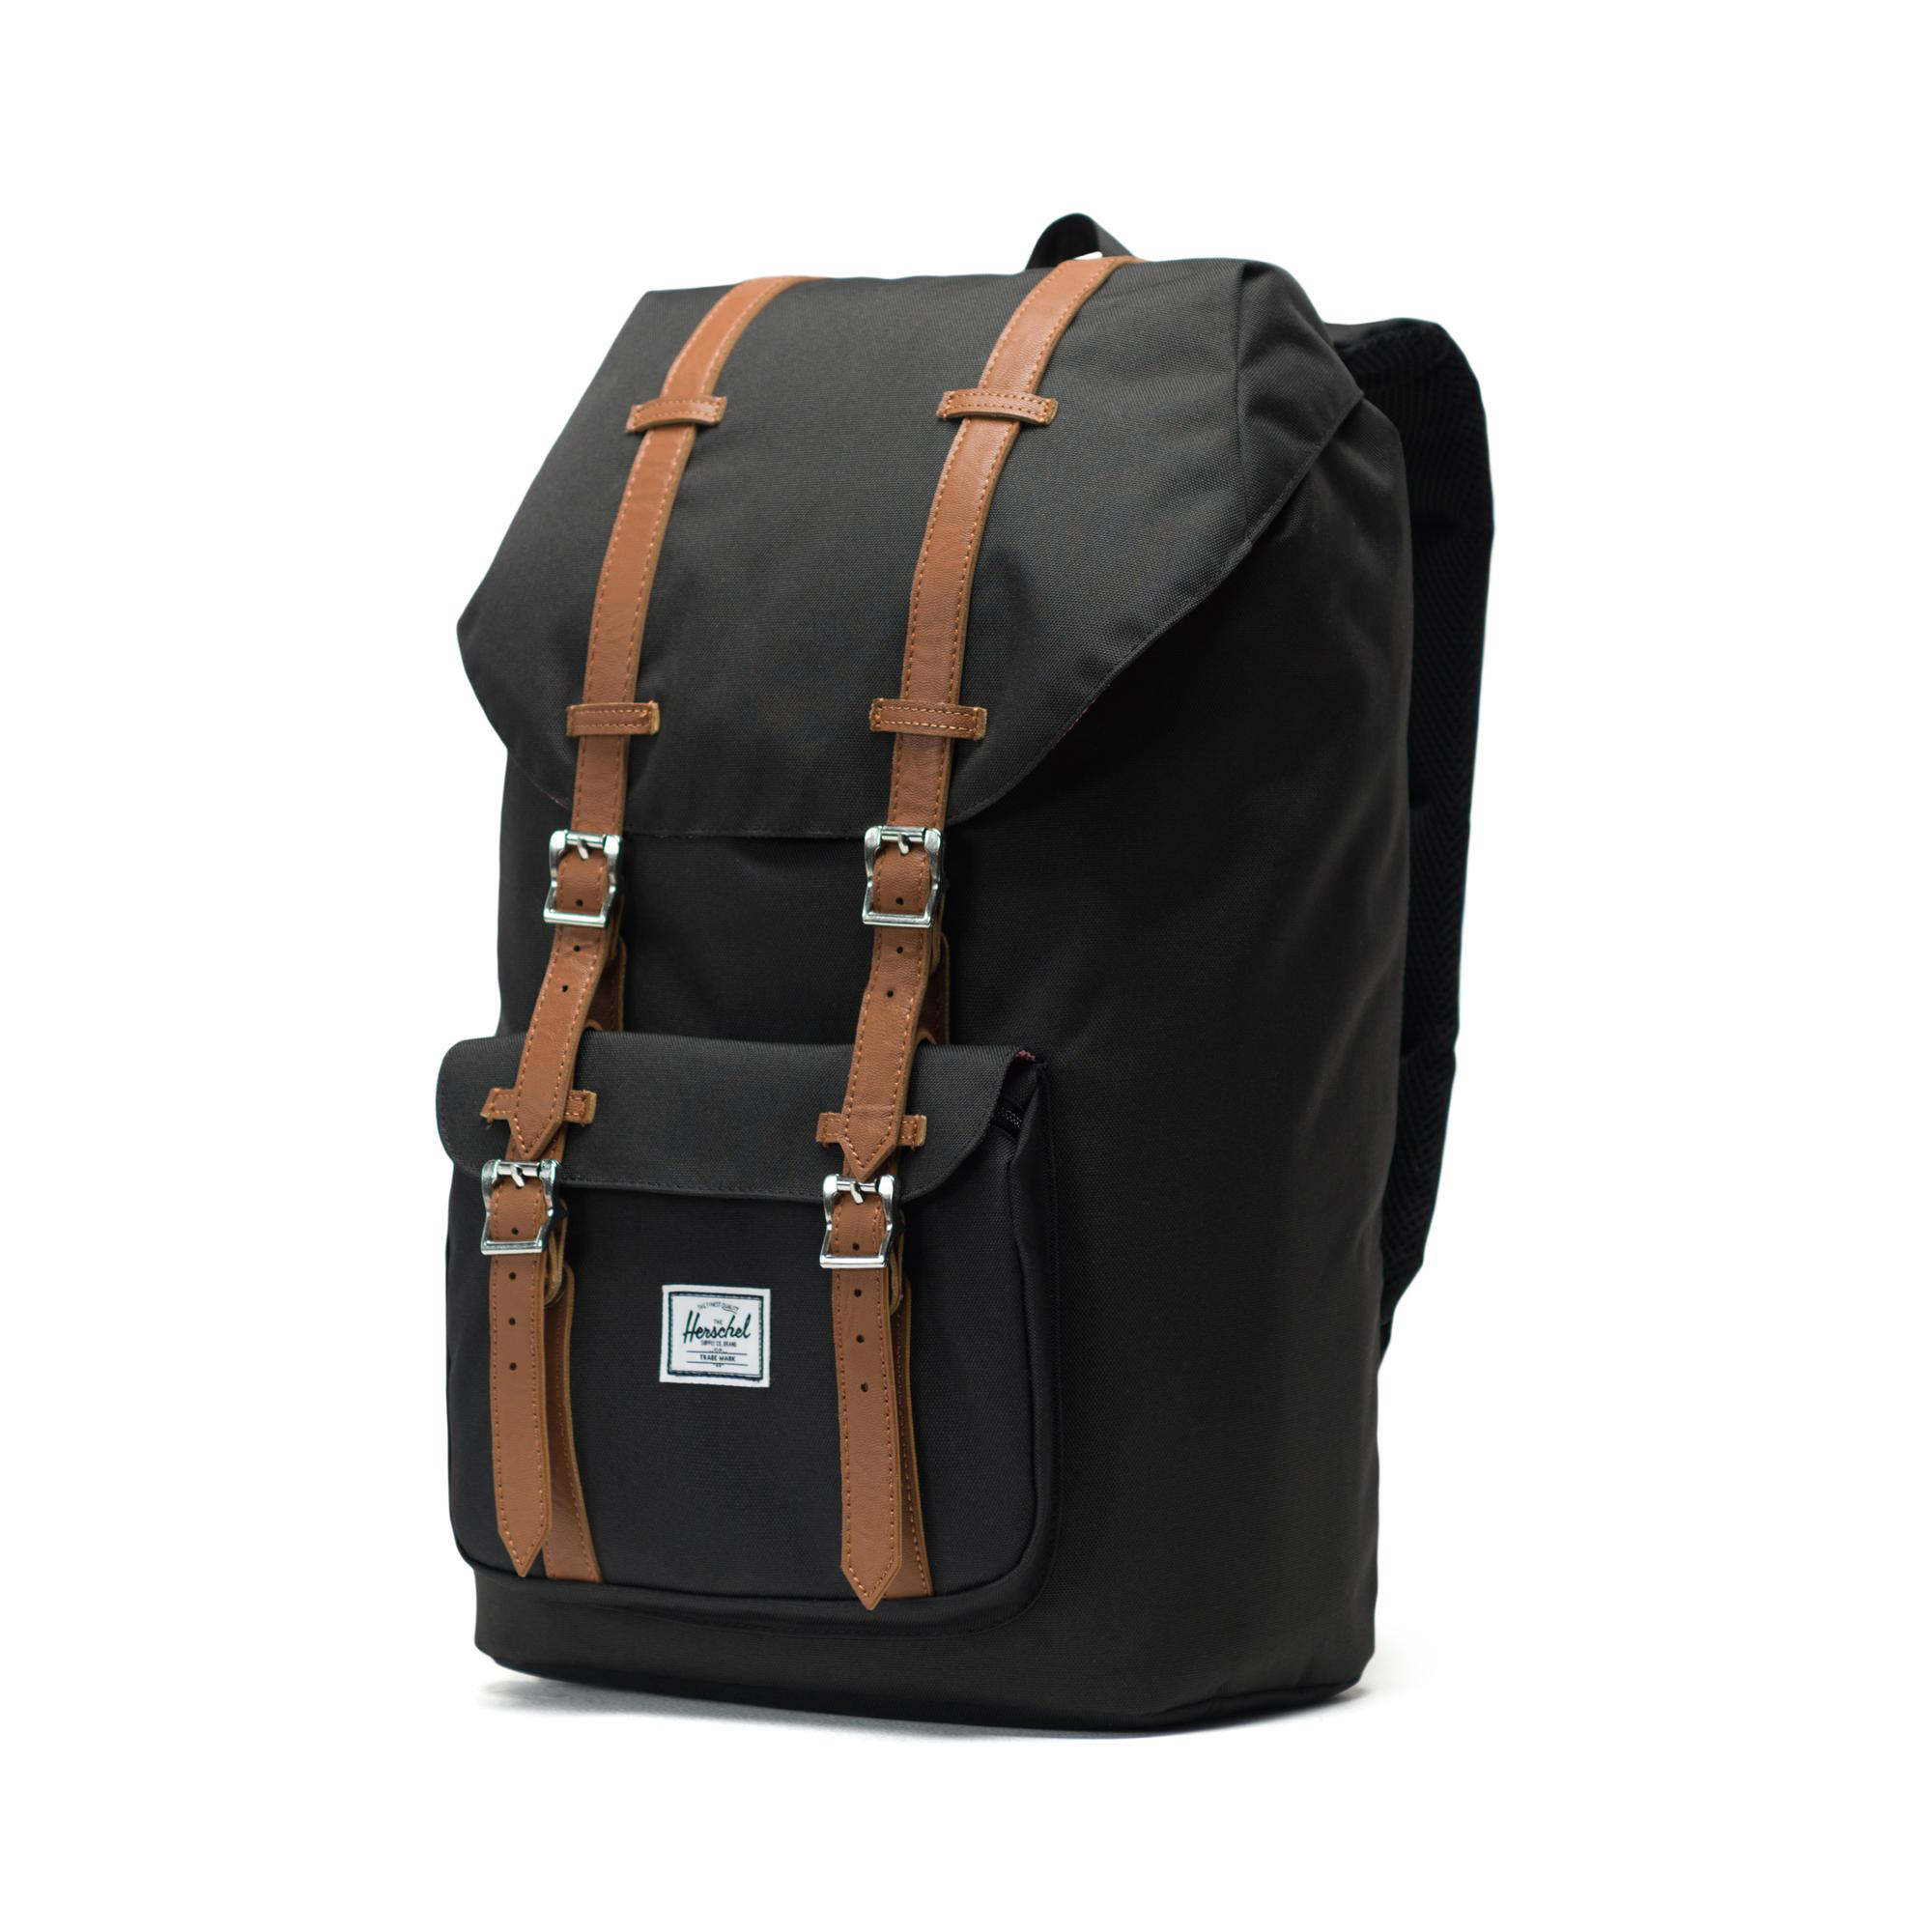 Herschel Little America backpack 9IbP9MB6pk